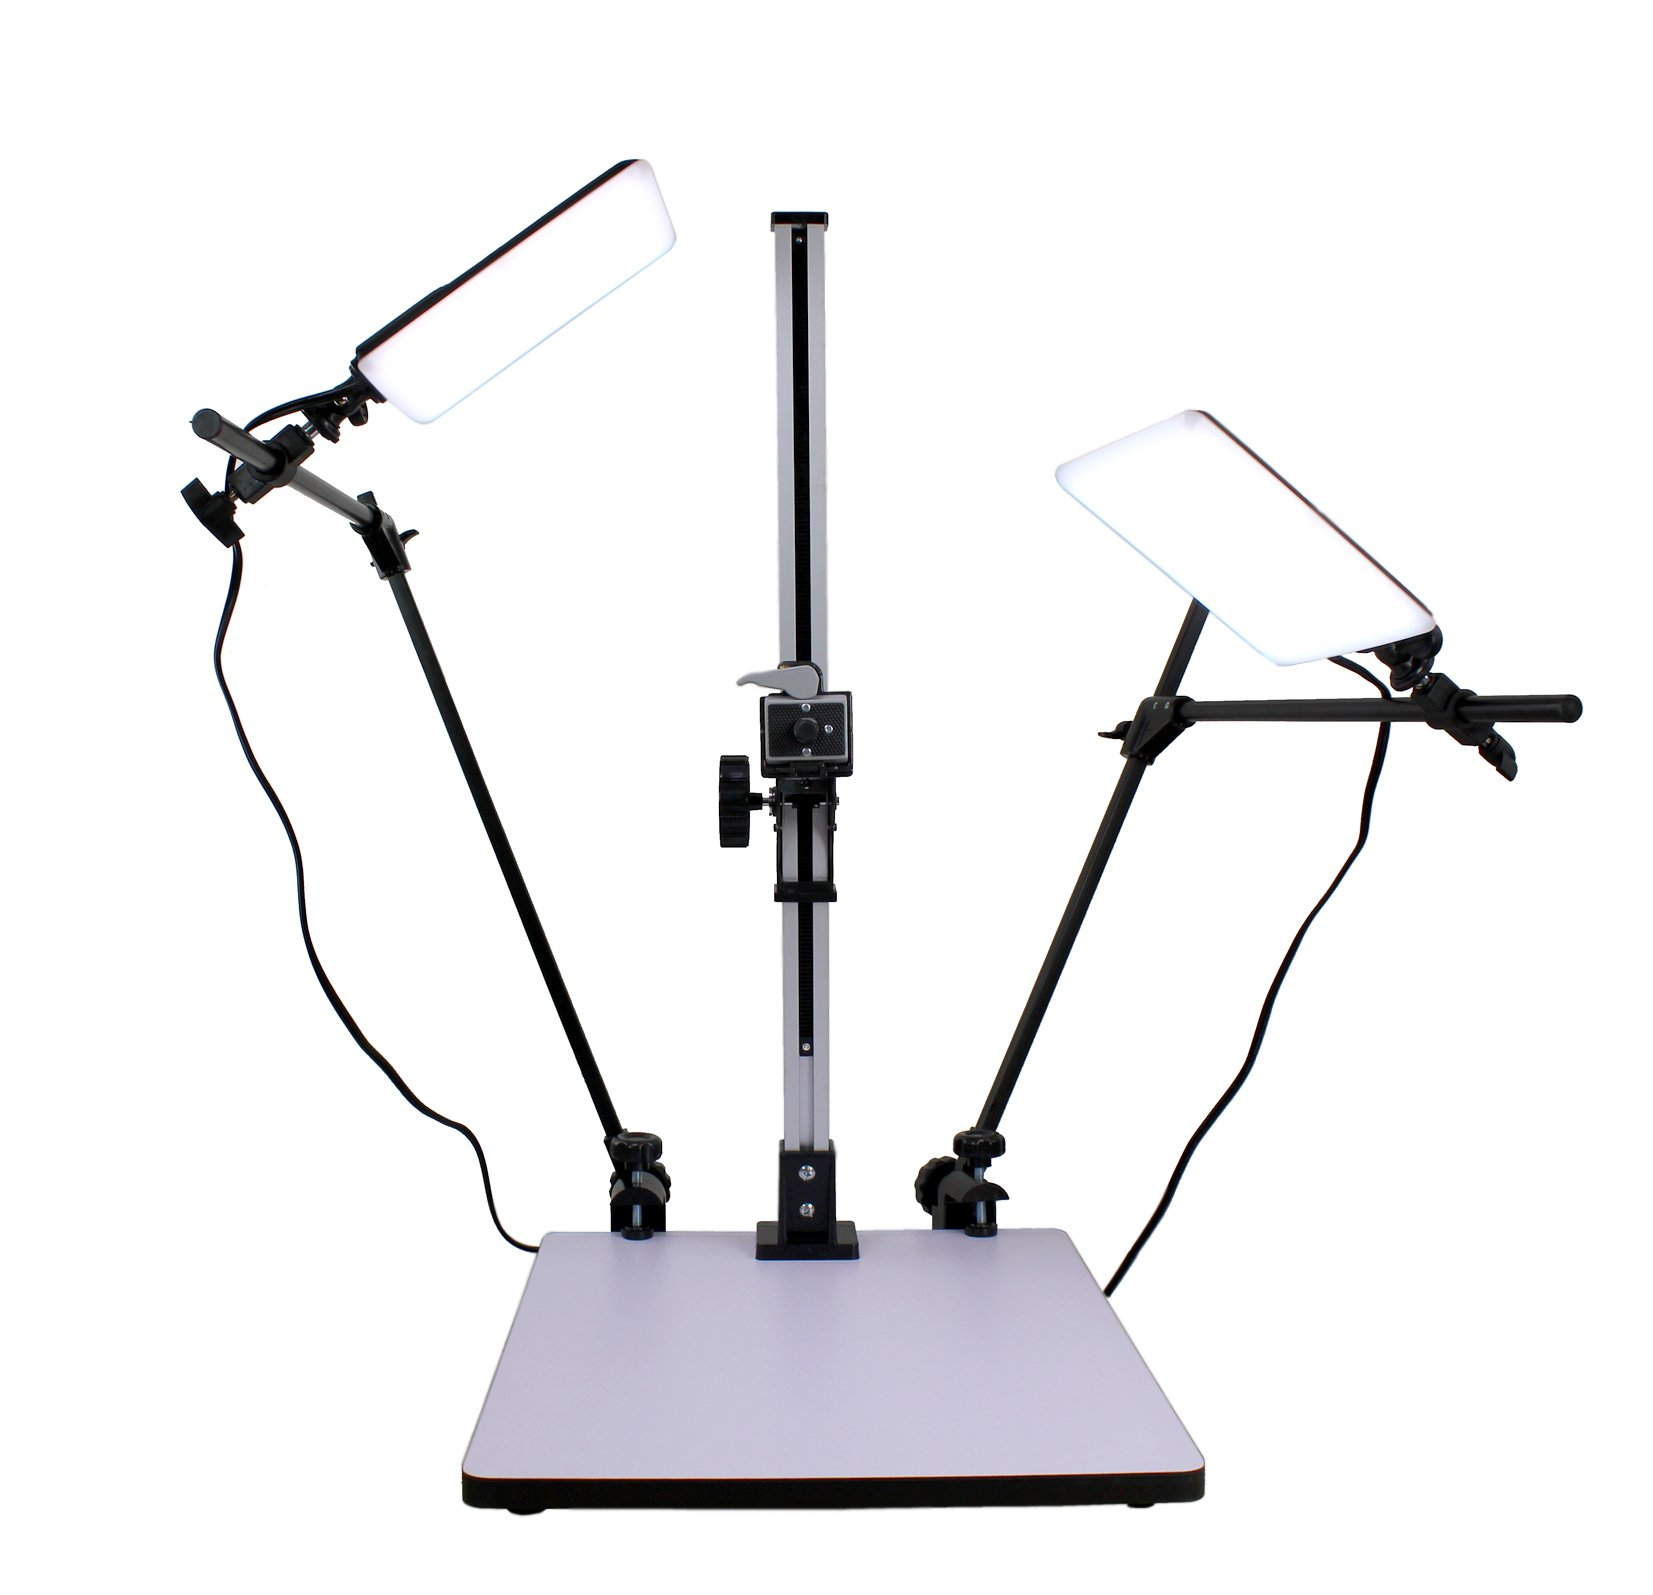 Albinar High Load 28'' Copy Macro Stand with 15.75''x19'' Base, Quick Release Mount and Two Daylight Spectrum 5600K 16W LED Lights by Albinar